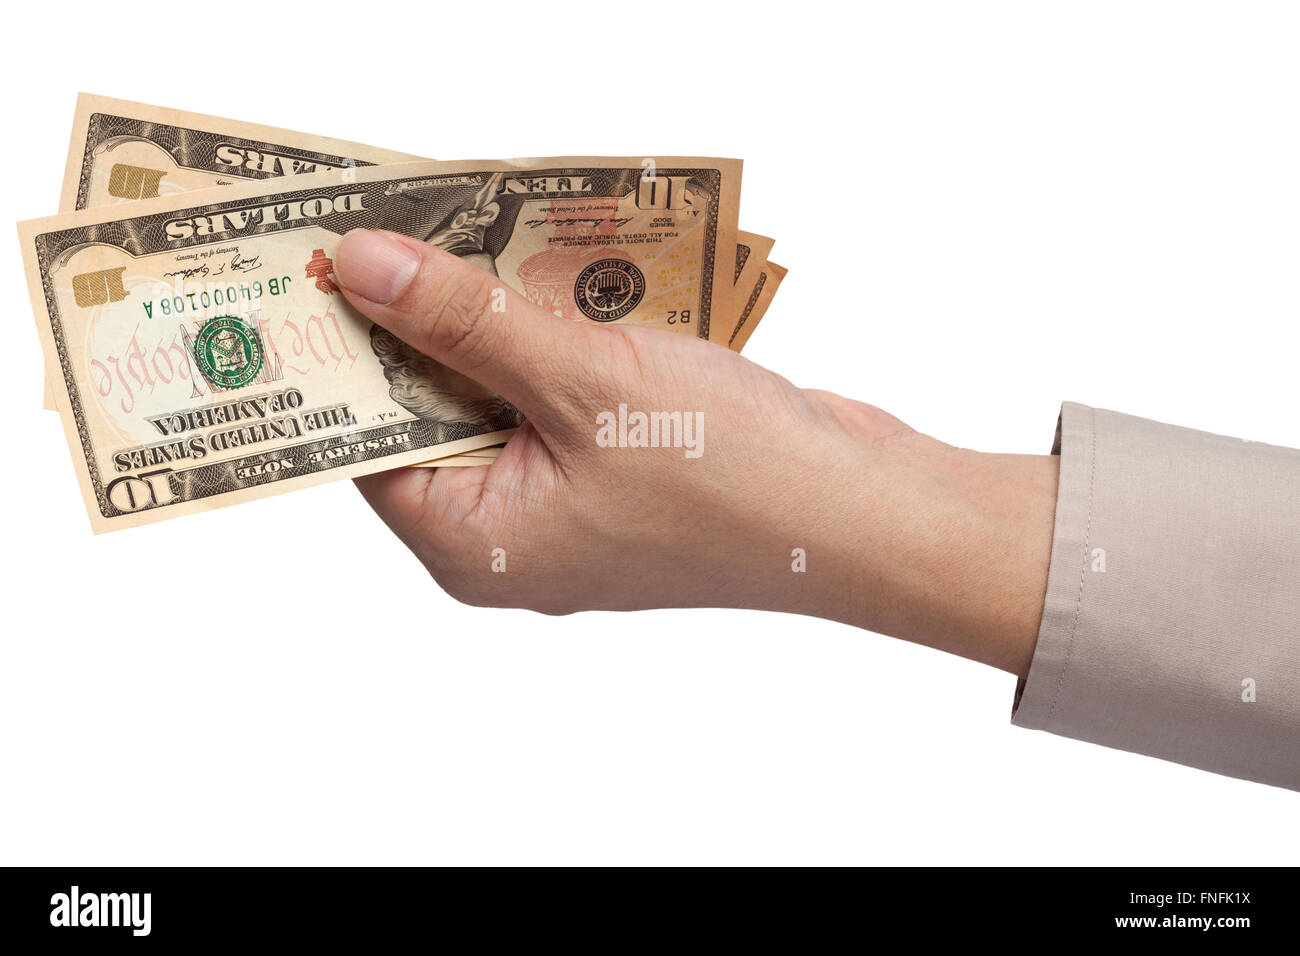 Hand holding US money isolated on white background - Stock Image